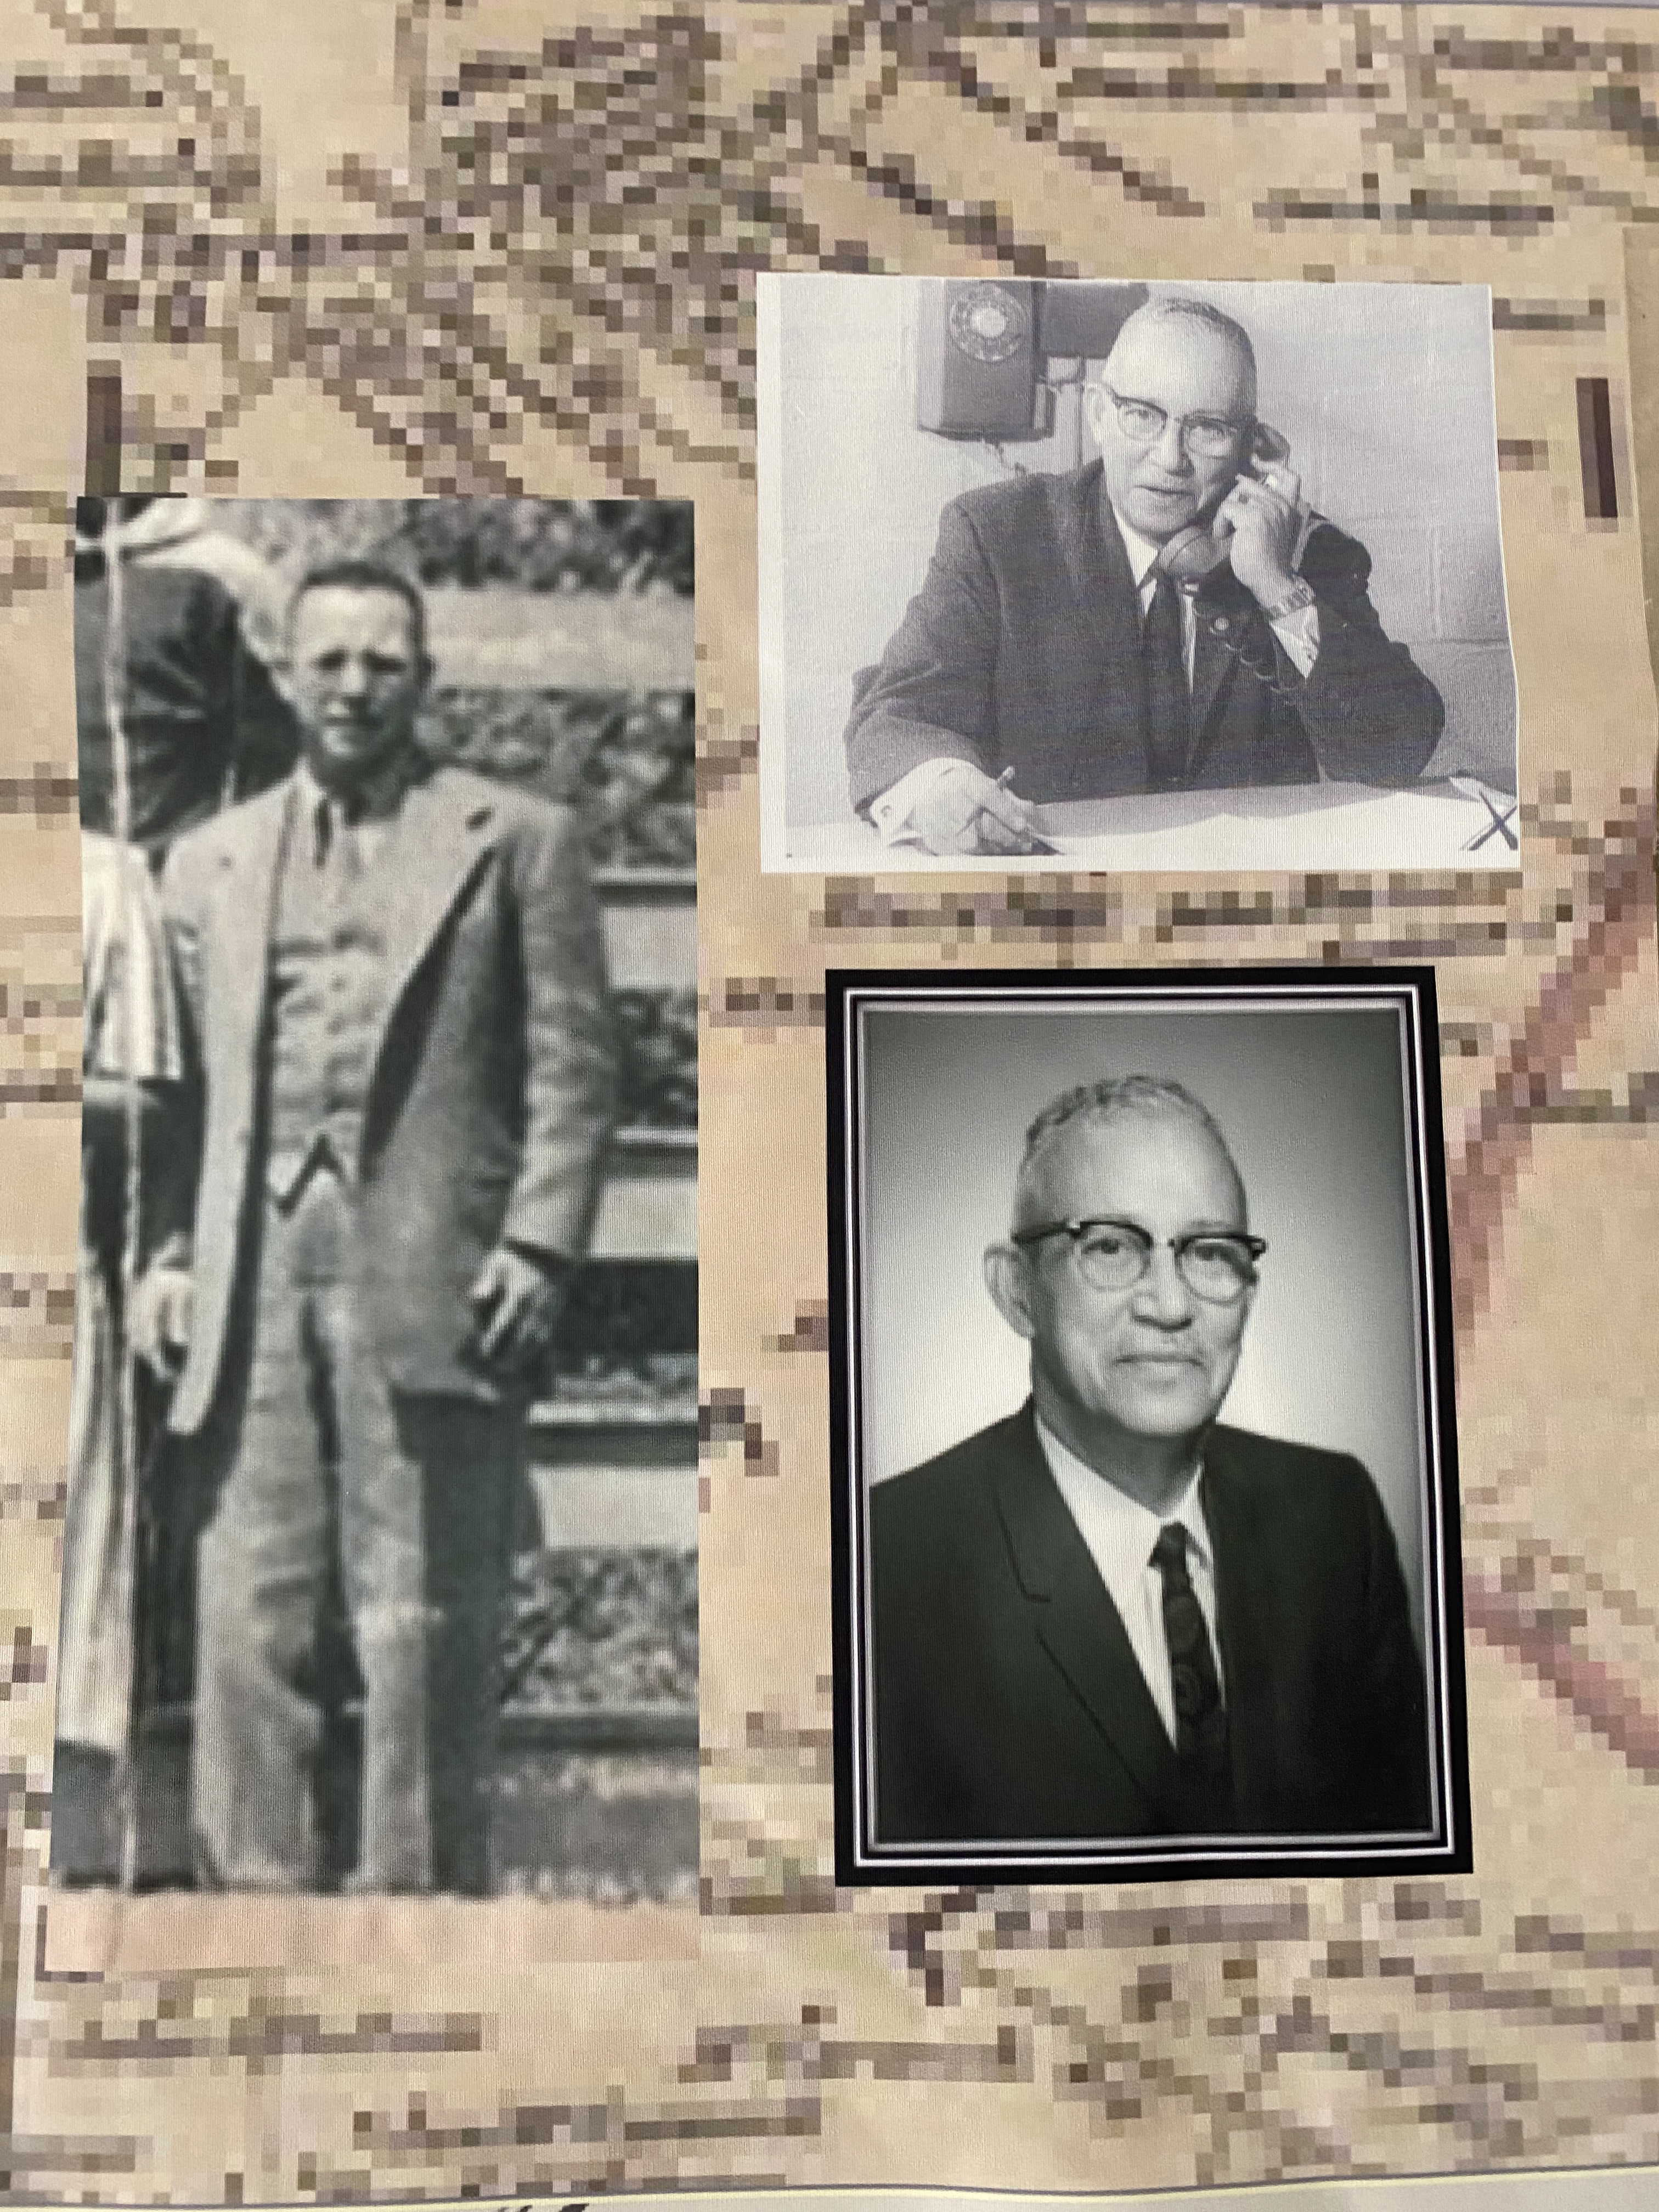 Baltimore native Leon S. Roye, he was the first African American principal in Harford County